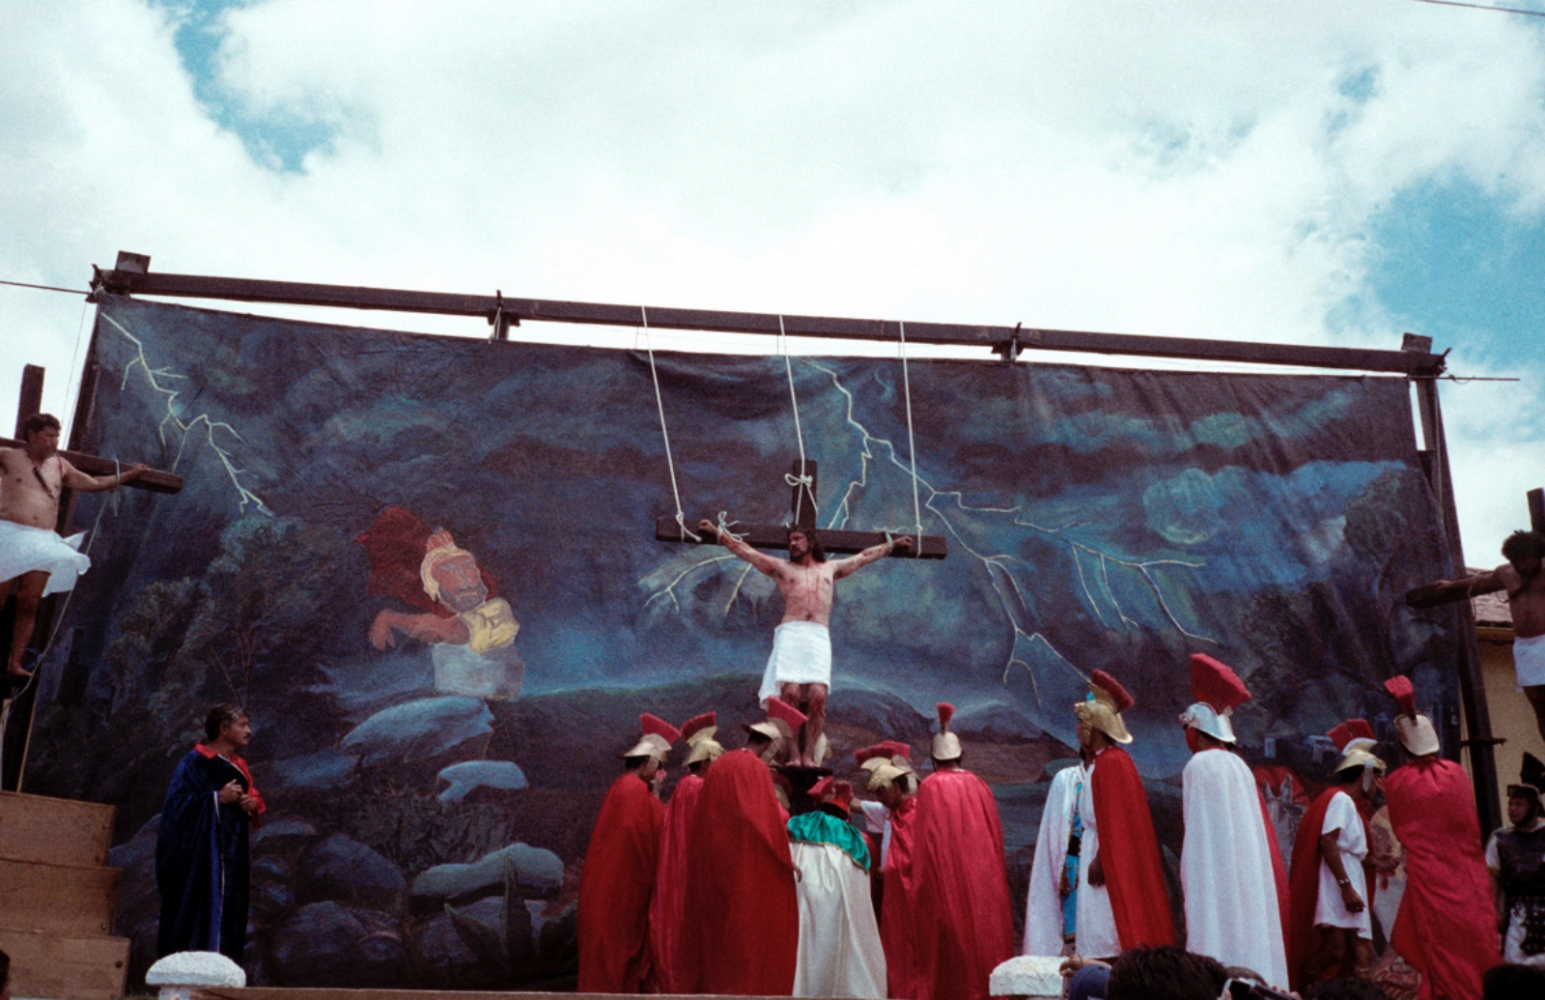 Crucifixion, Chiantla, Guatemala, April 2006